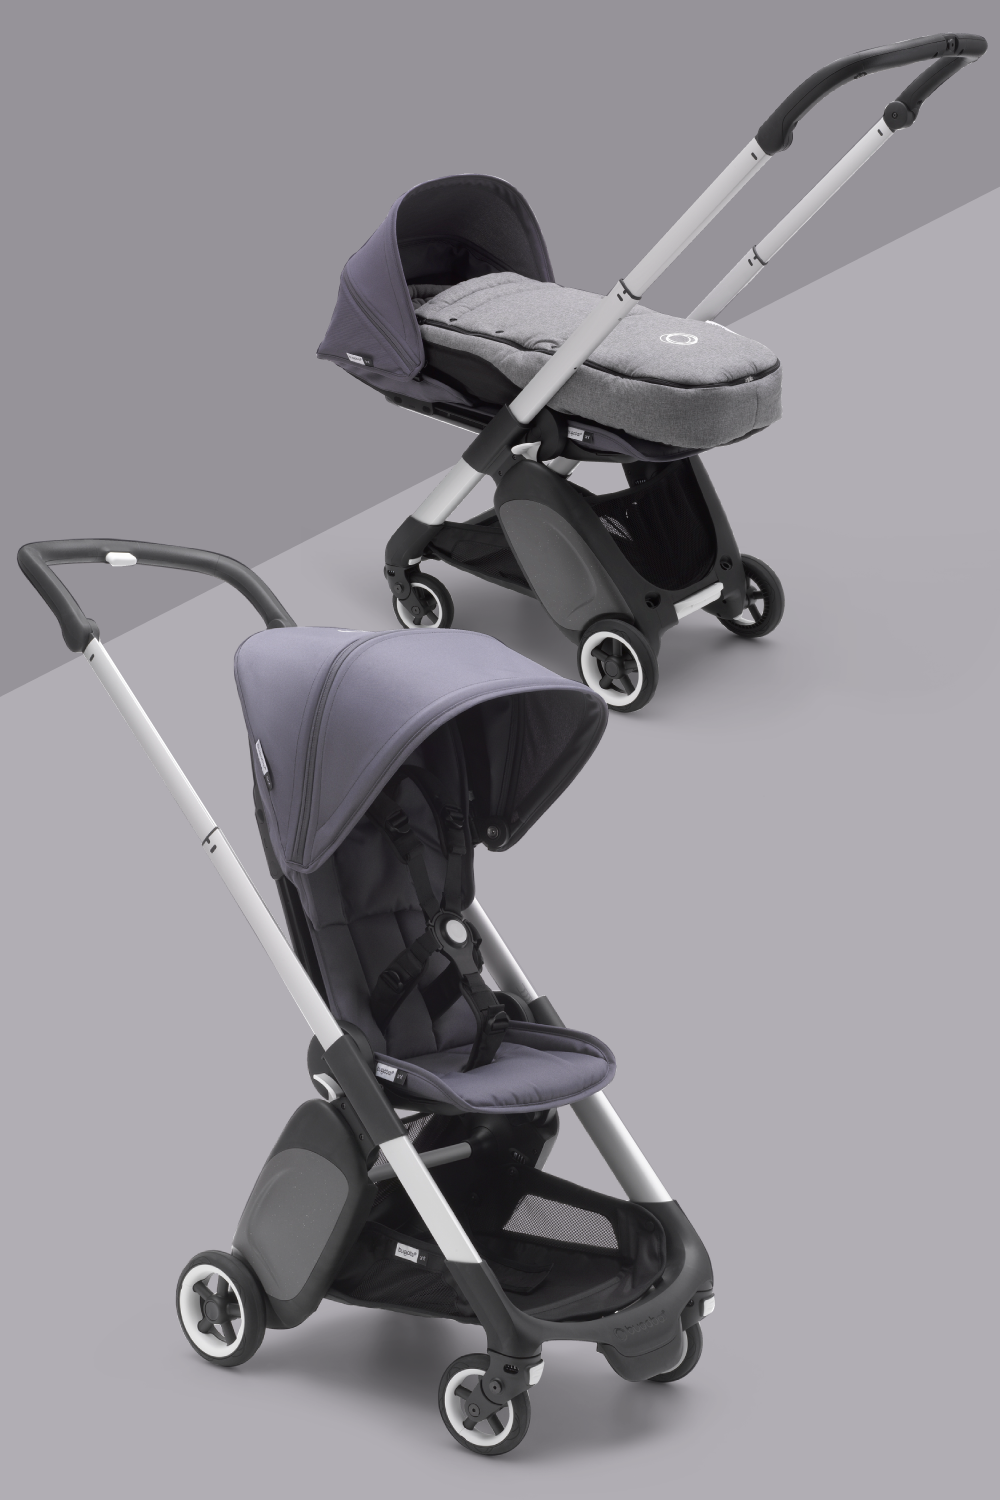 Bugaboo Ant Complete Stroller (With images) Stroller